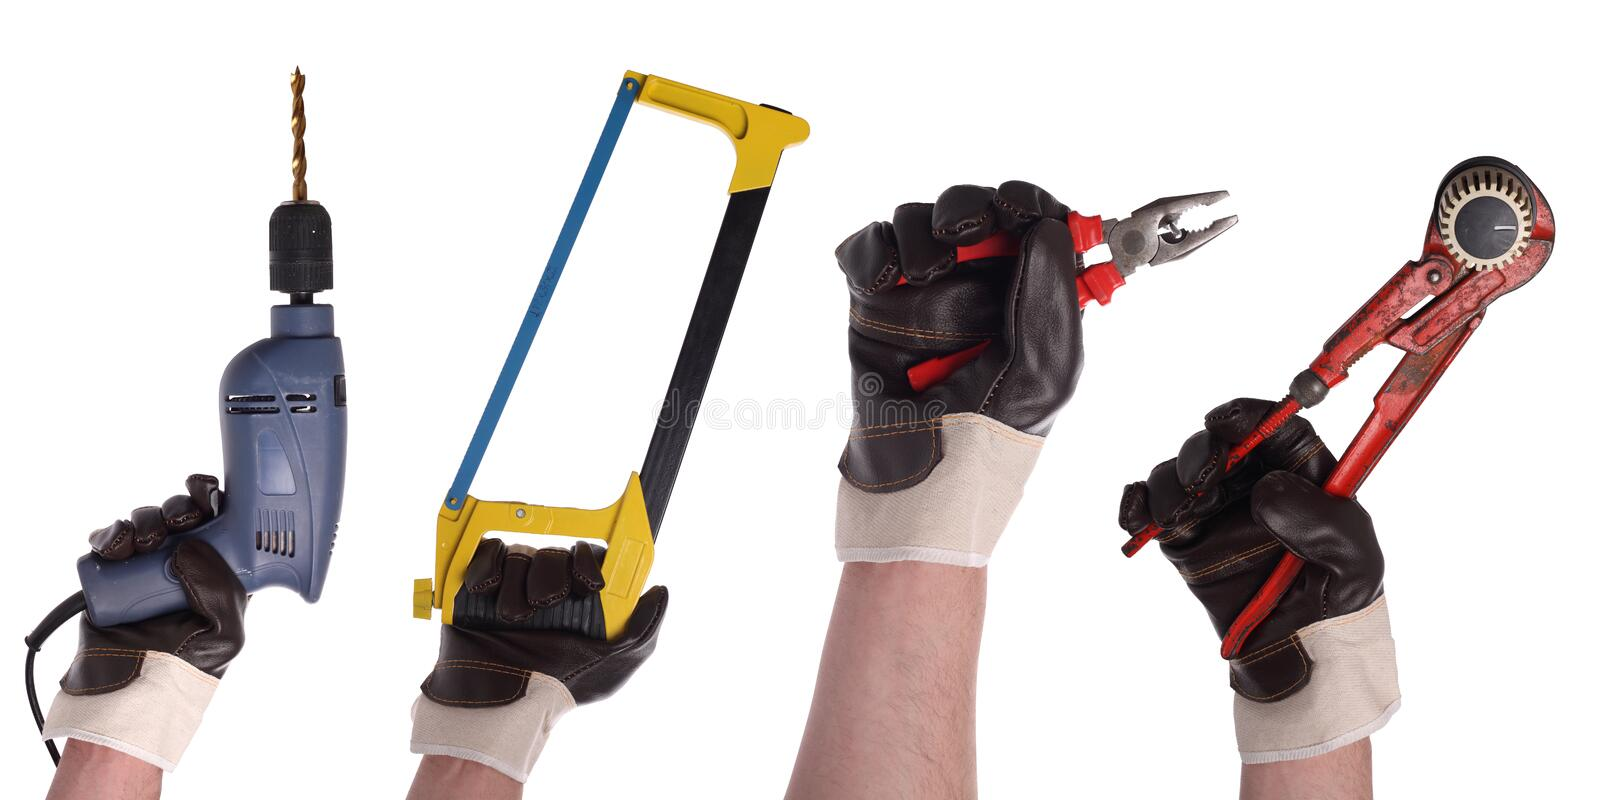 Hand tool set 3 stock images